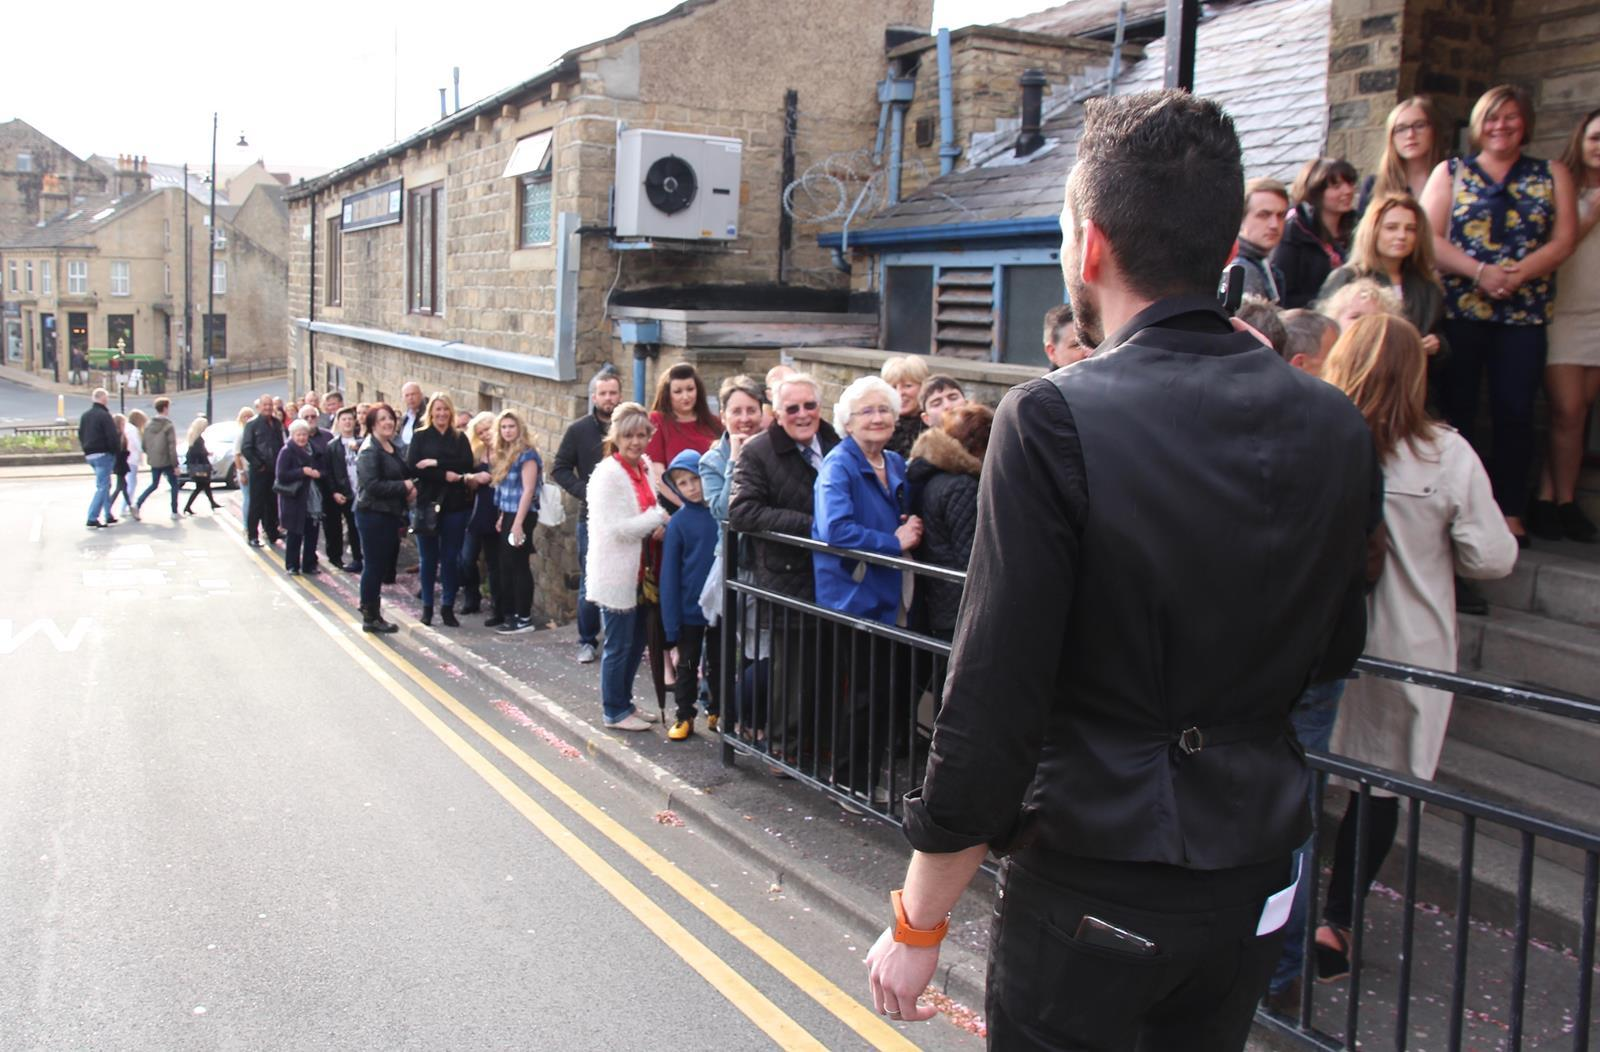 Auditionees at Baildon Club for ITV's The Voice